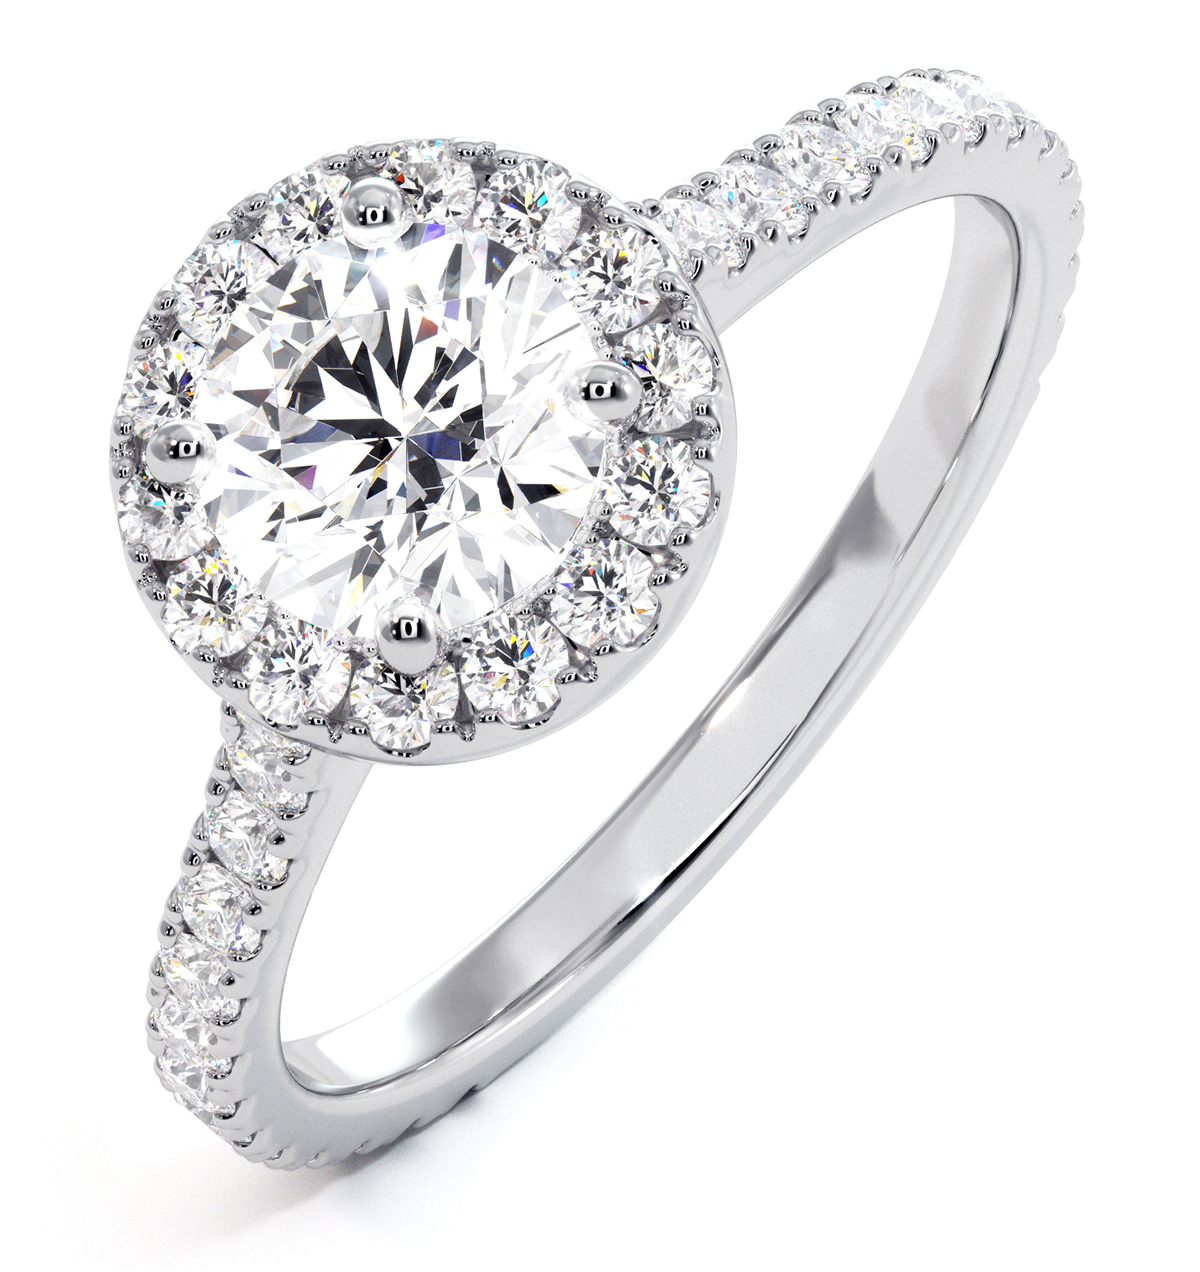 Reina GIA Diamond Halo Engagement Ring in 18K White Gold 1.40ct G/SI2 - image 1